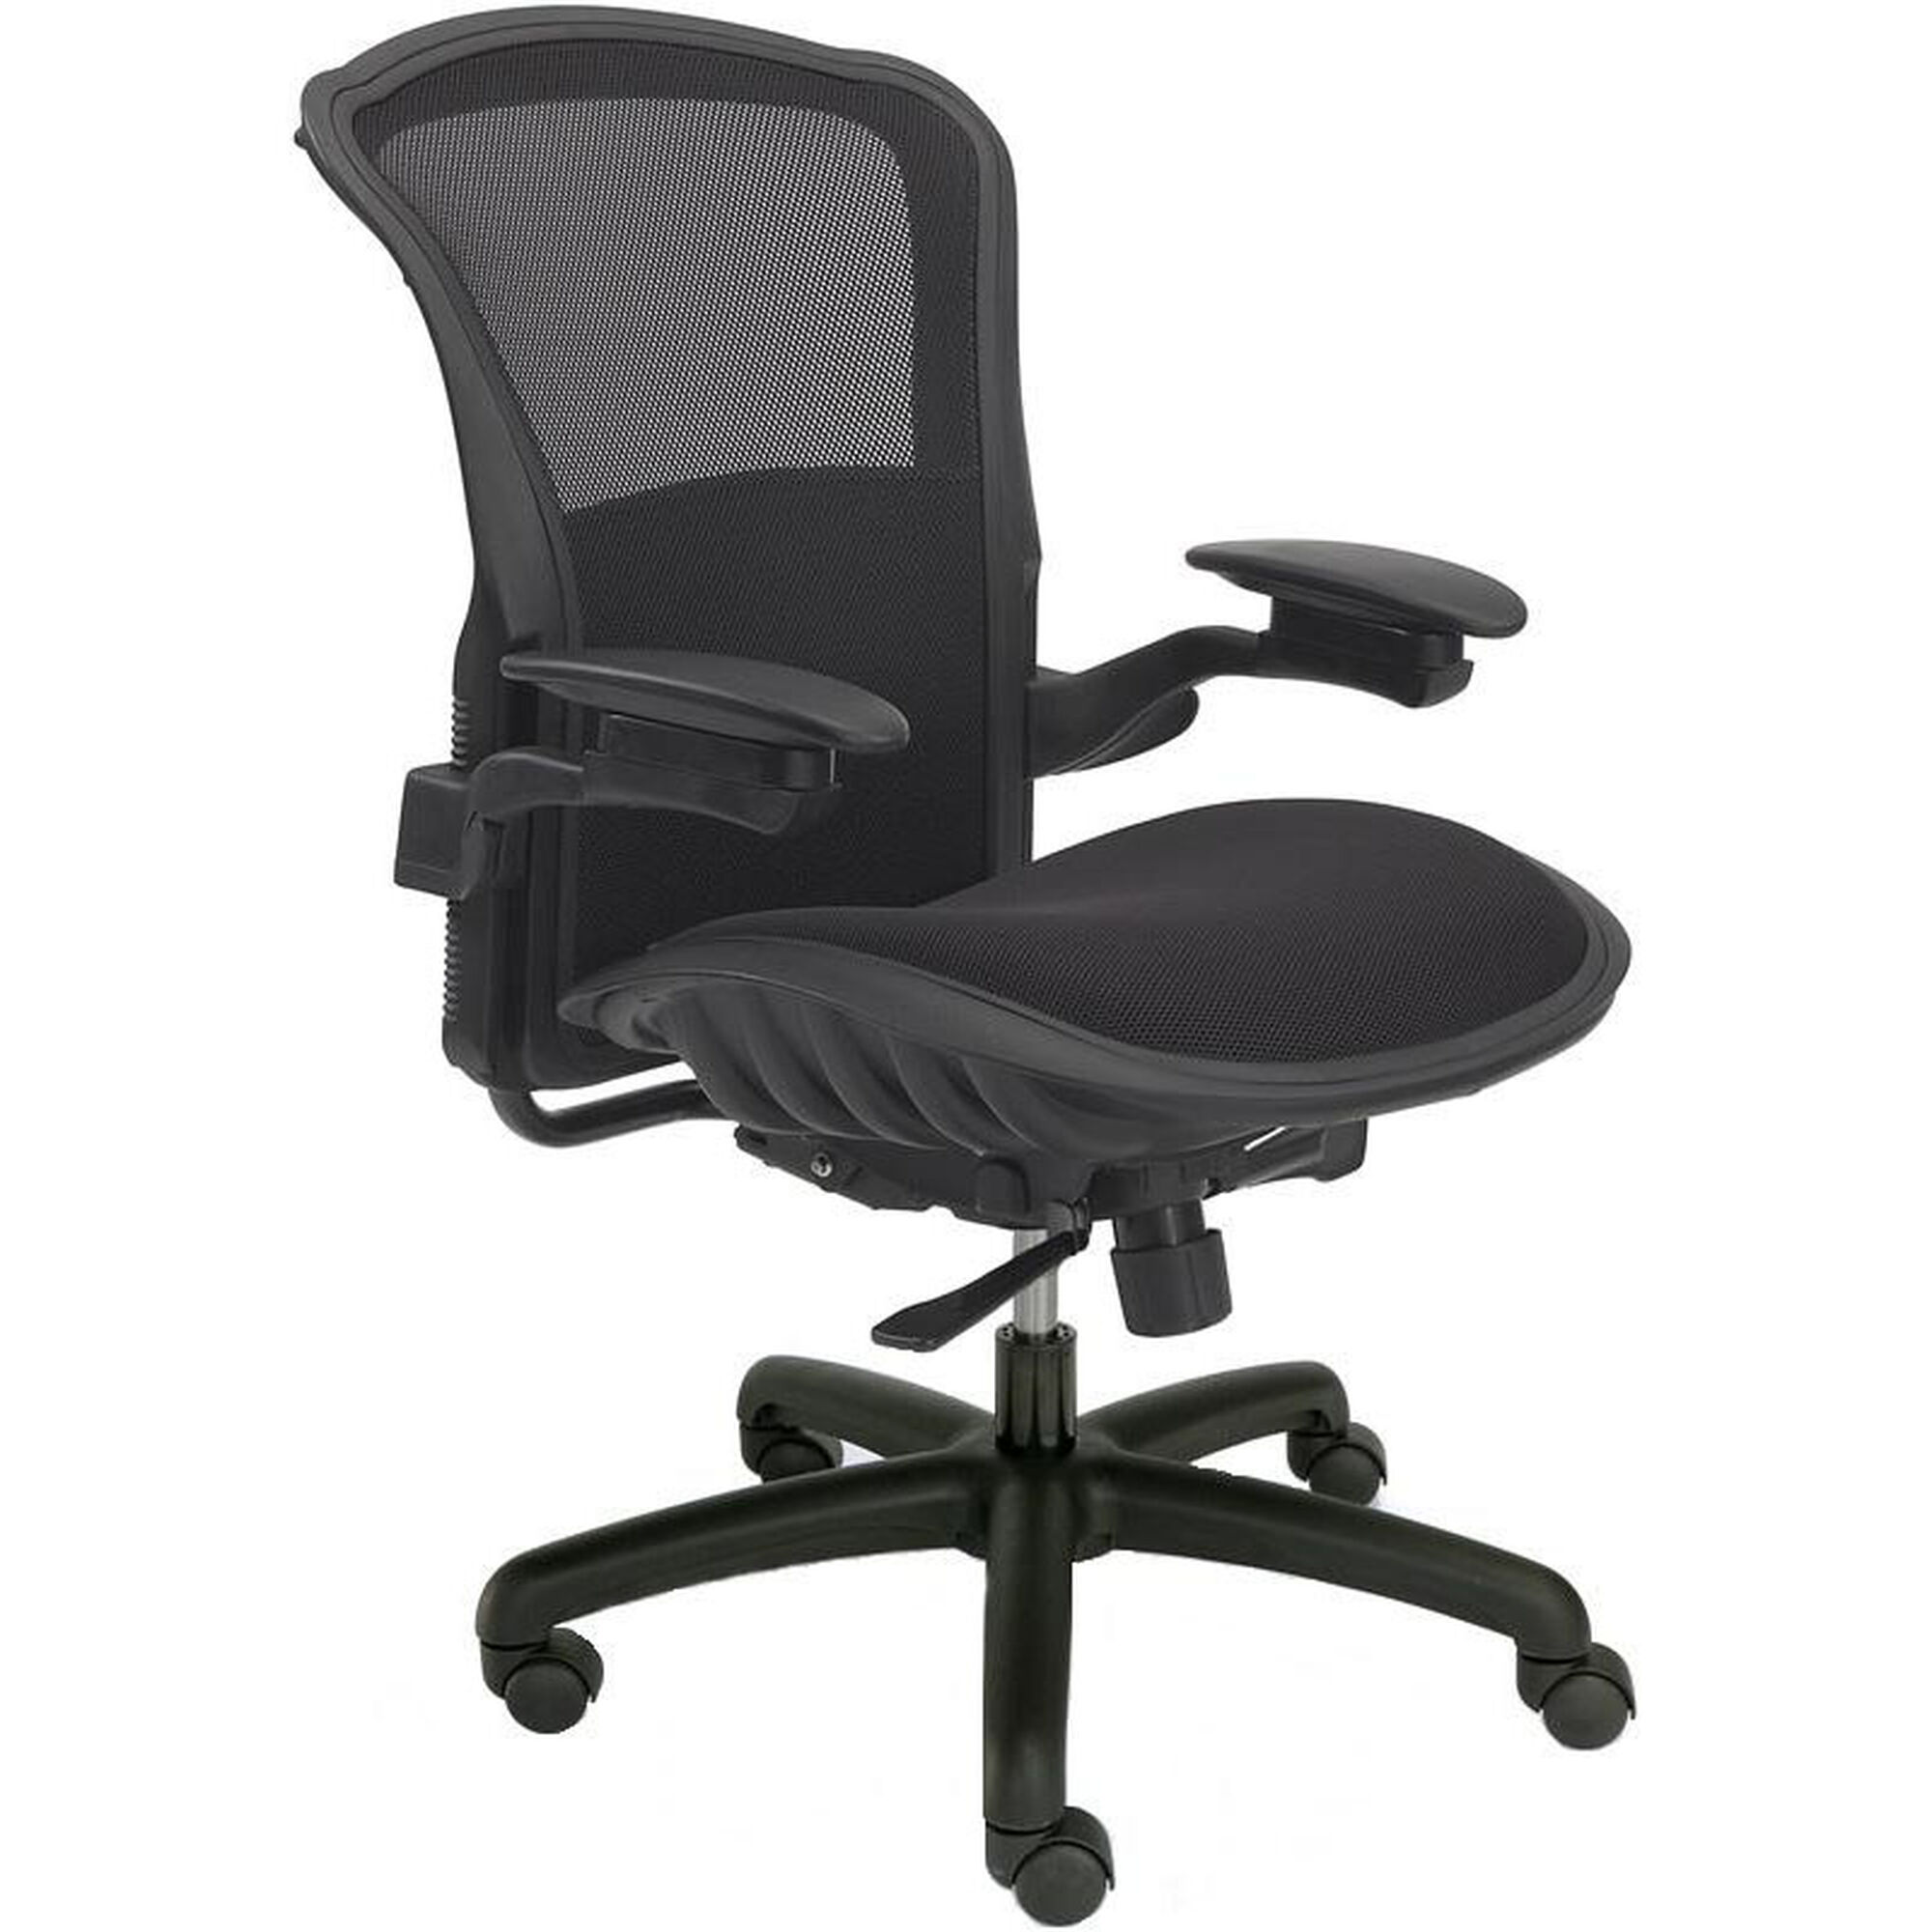 Awe Inspiring Magnum 24 7 Swivel Chair With 400 Lb Weight Capacity Download Free Architecture Designs Scobabritishbridgeorg